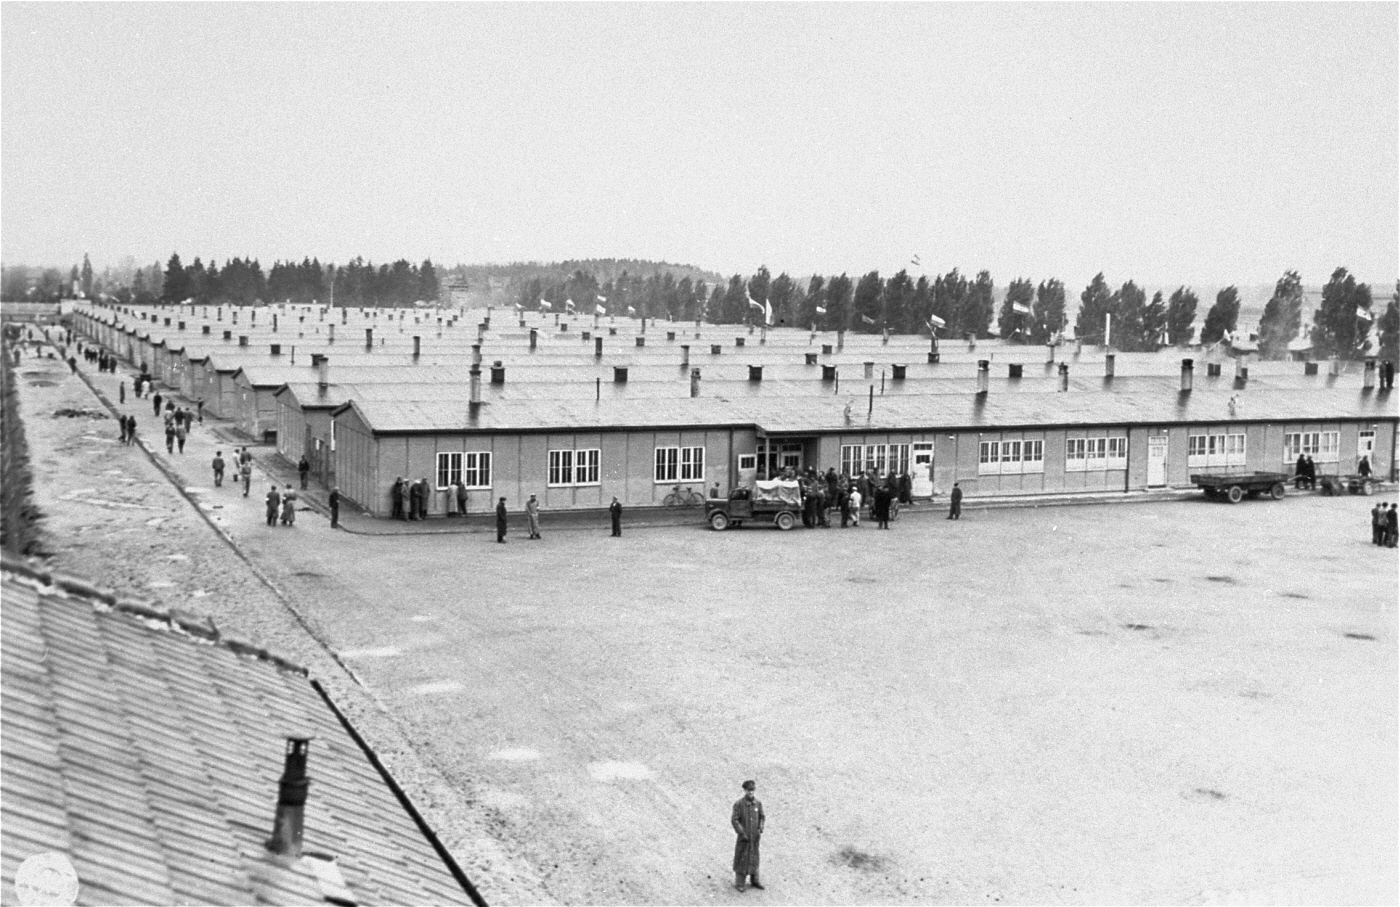 Dachau Concentration Camp: History & Overview